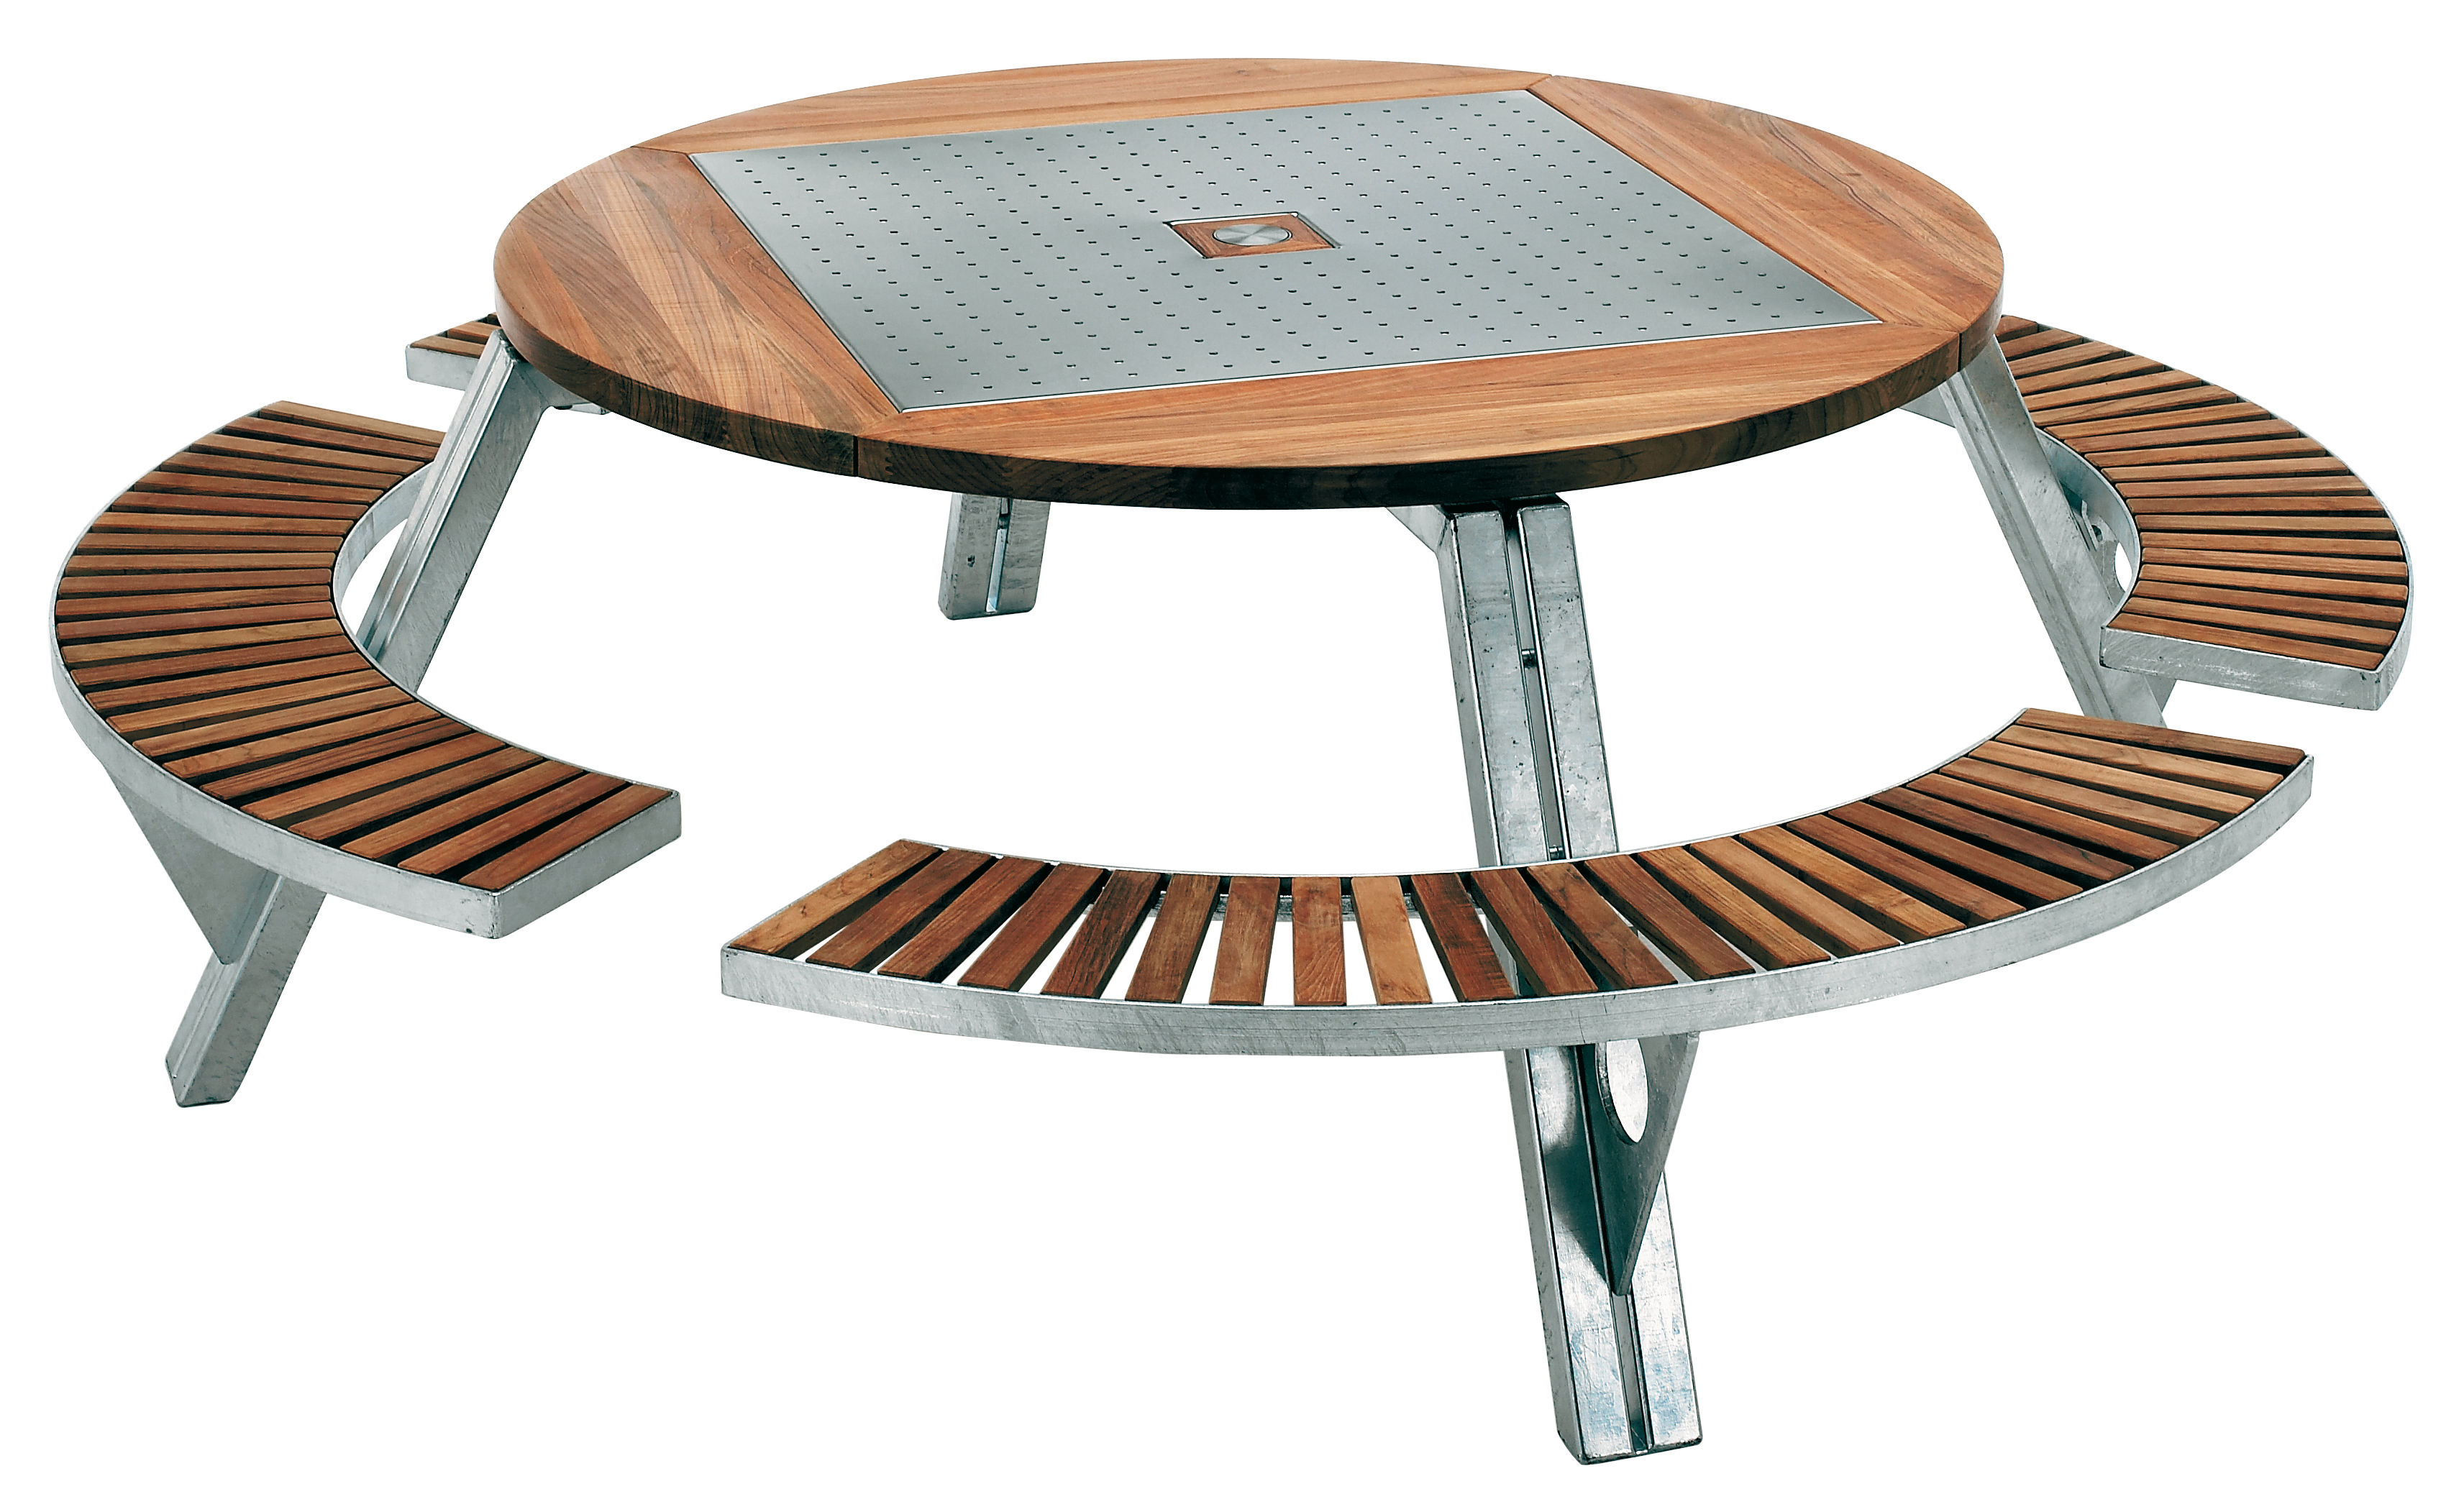 Gargantua Garden Table Adjustable Table And Bench Set Teak Steel By Extremis